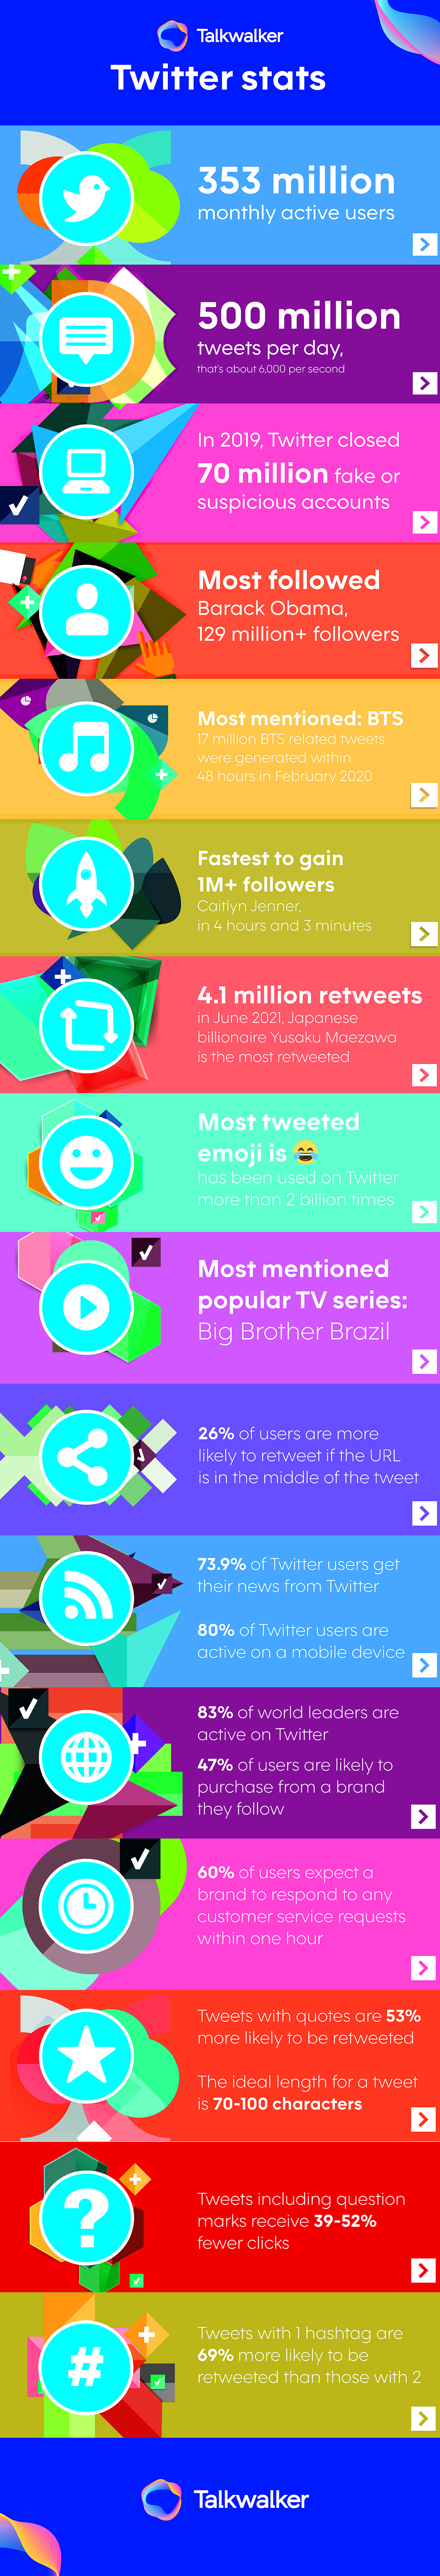 40 amazing Twitter stats infographic